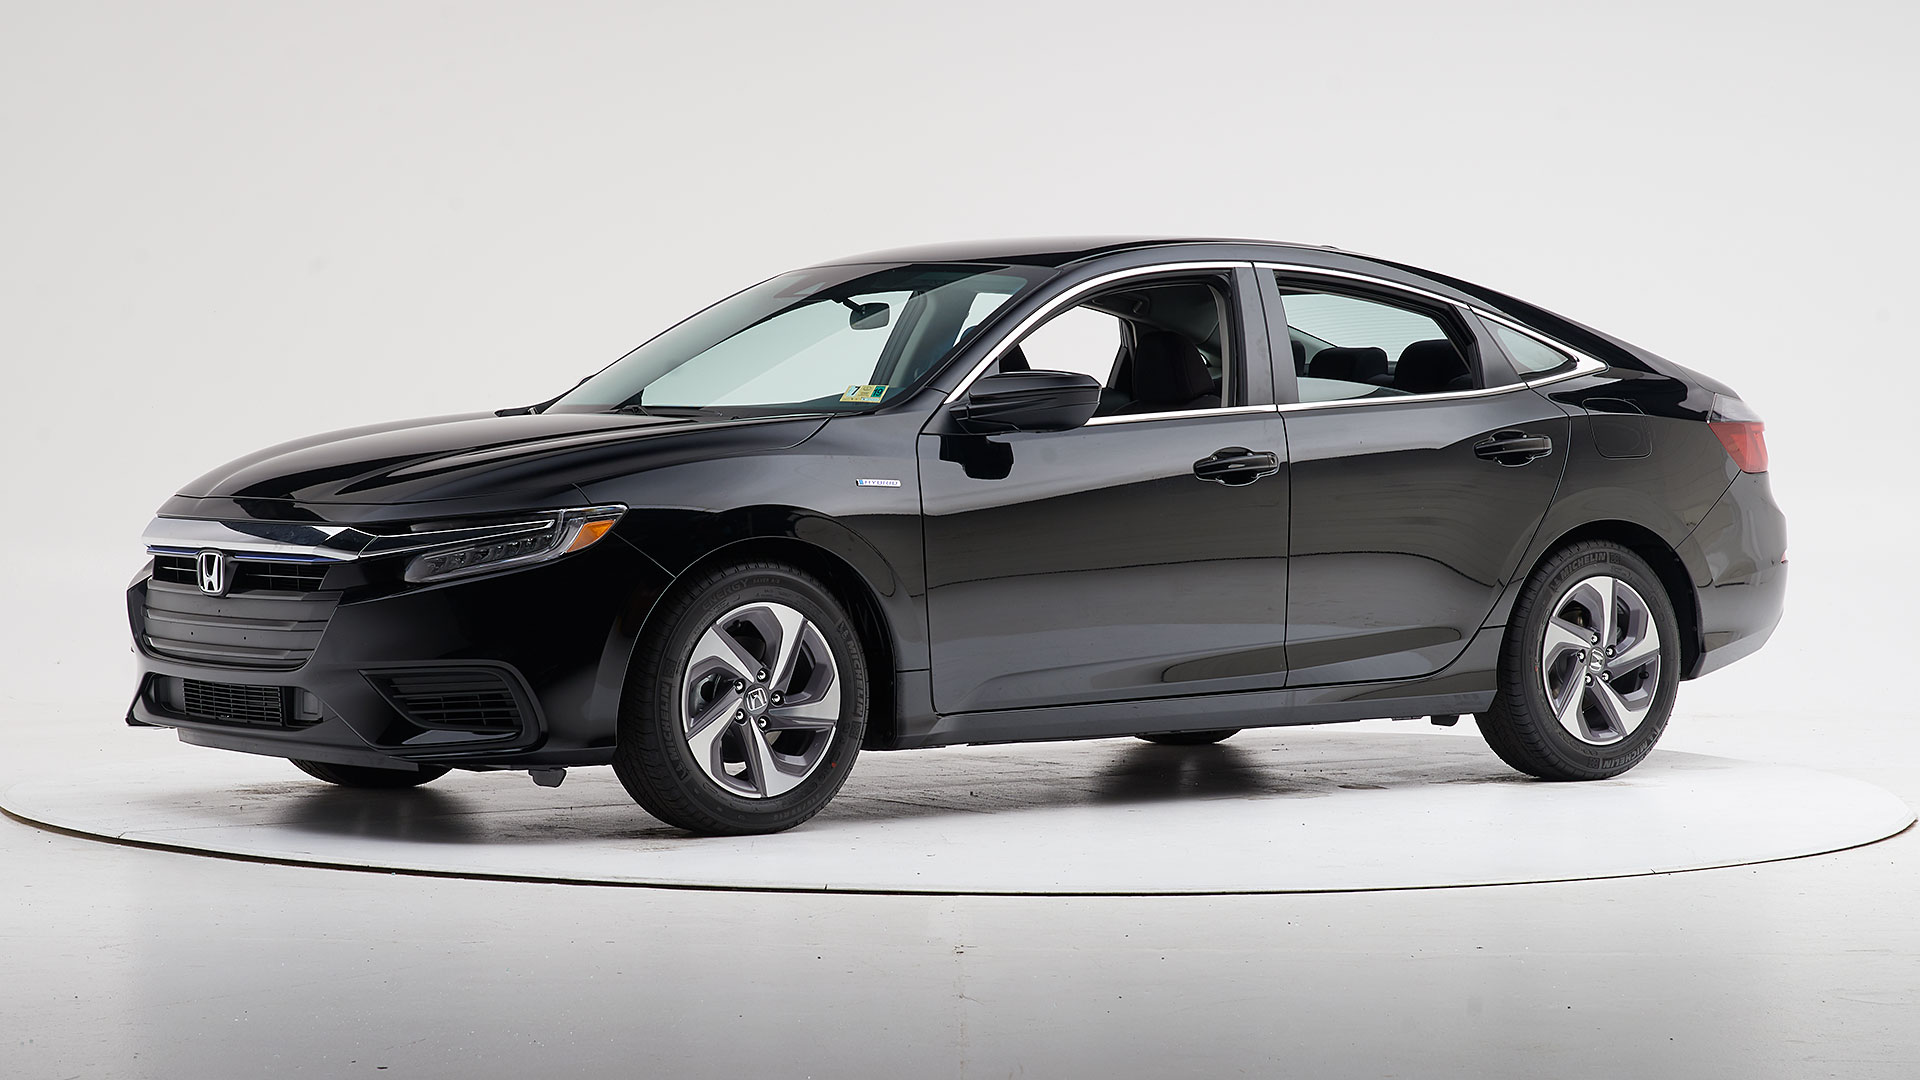 2019 Honda Insight 4-door sedan